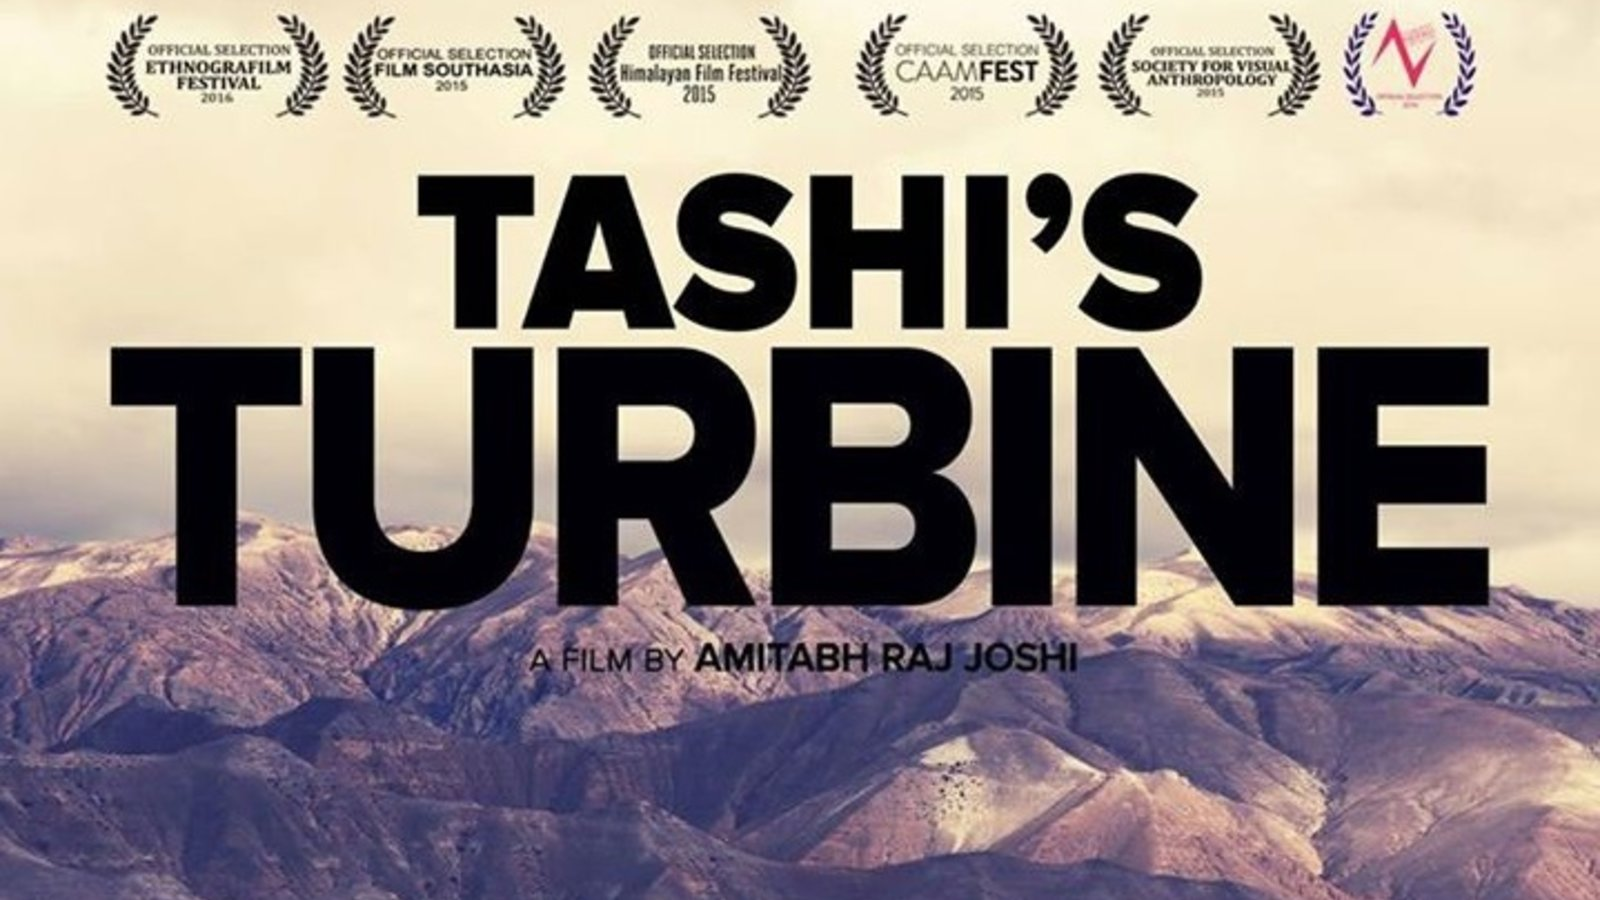 Tashi's Turbine - A Small Village in Nepal Harnesses Wind Energy